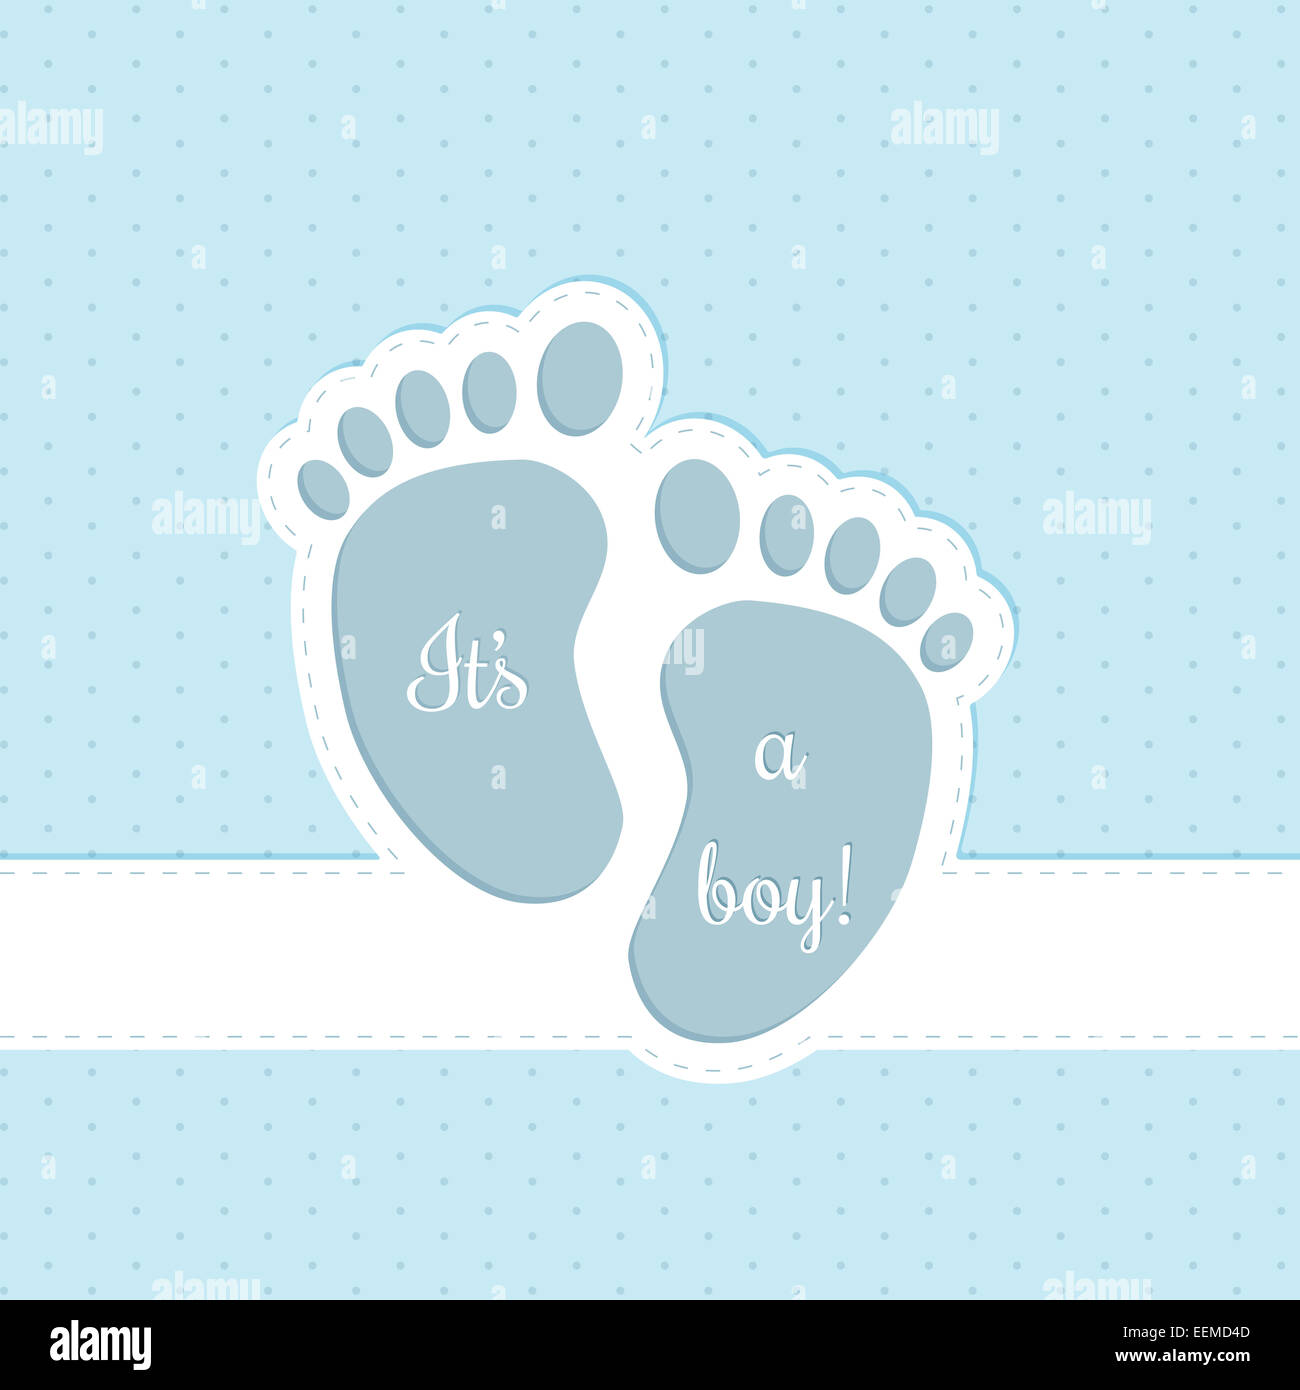 Baby Shower Greeting Card Invitation Design For Baby Boys Stock